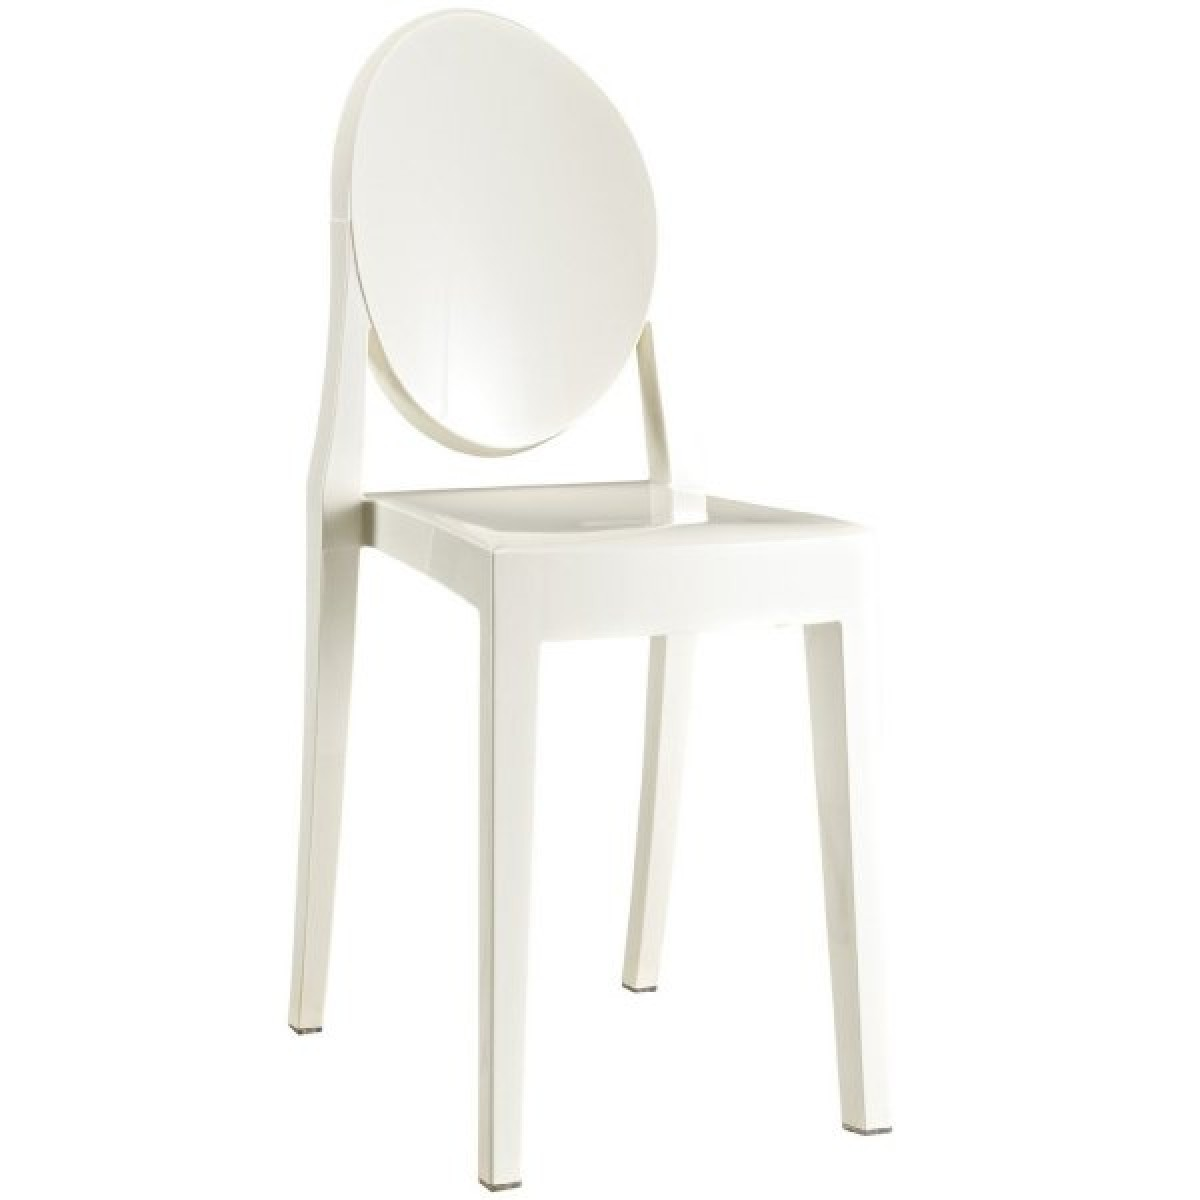 ghost chairs cheap la z boy big and tall executive office chair victoria style dining white color